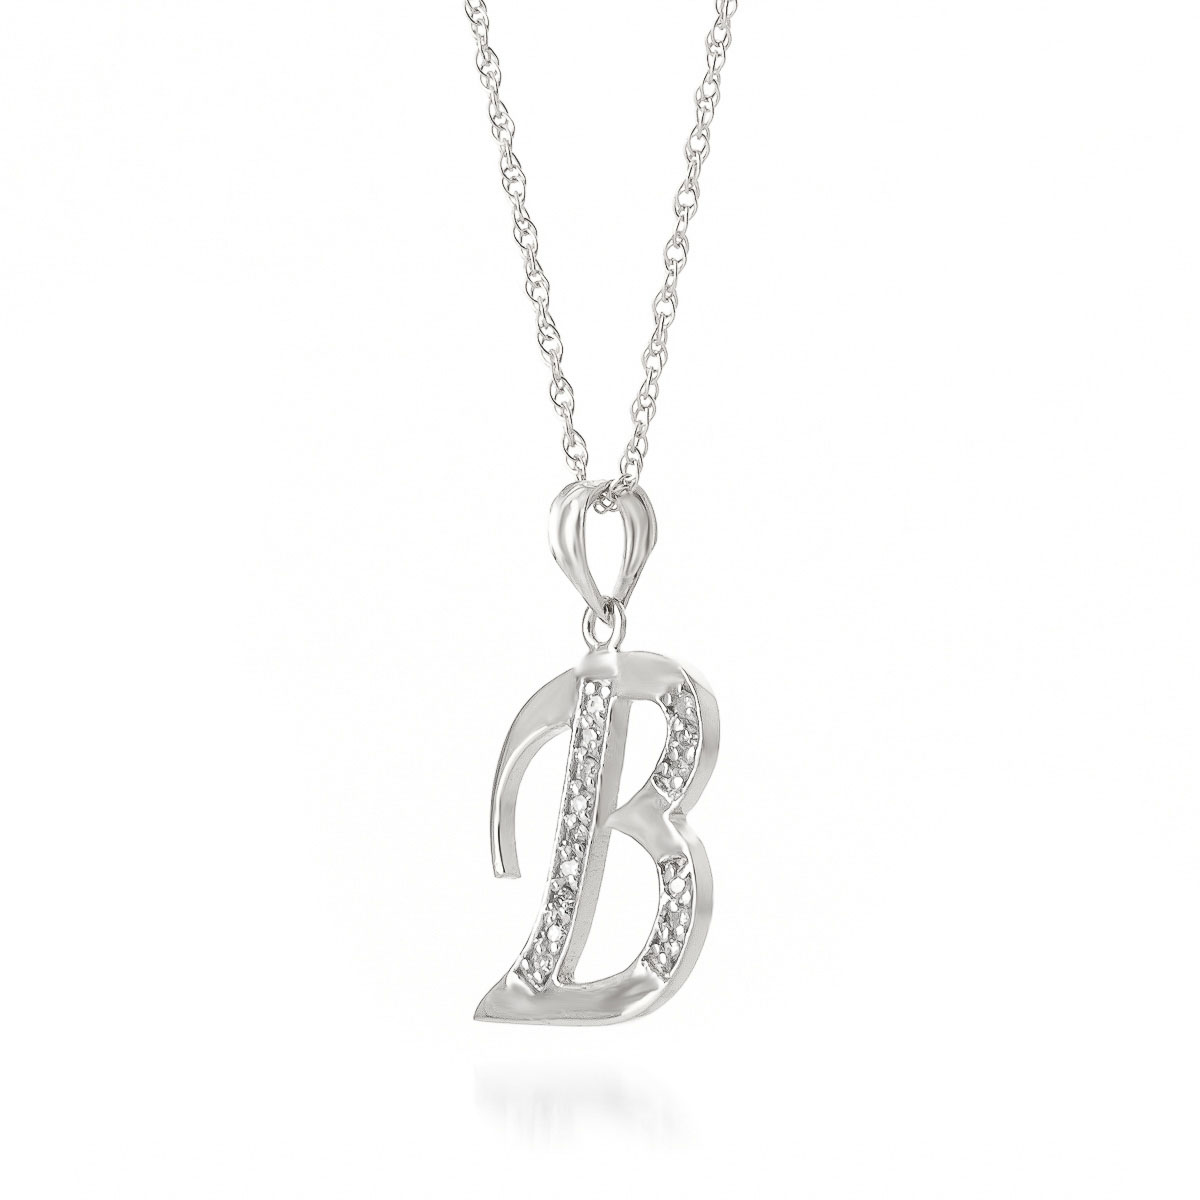 Diamond letter initial b pendant necklace in 9ct white gold 5615w diamond letter initial b pendant necklace in 9ct white gold mozeypictures Images